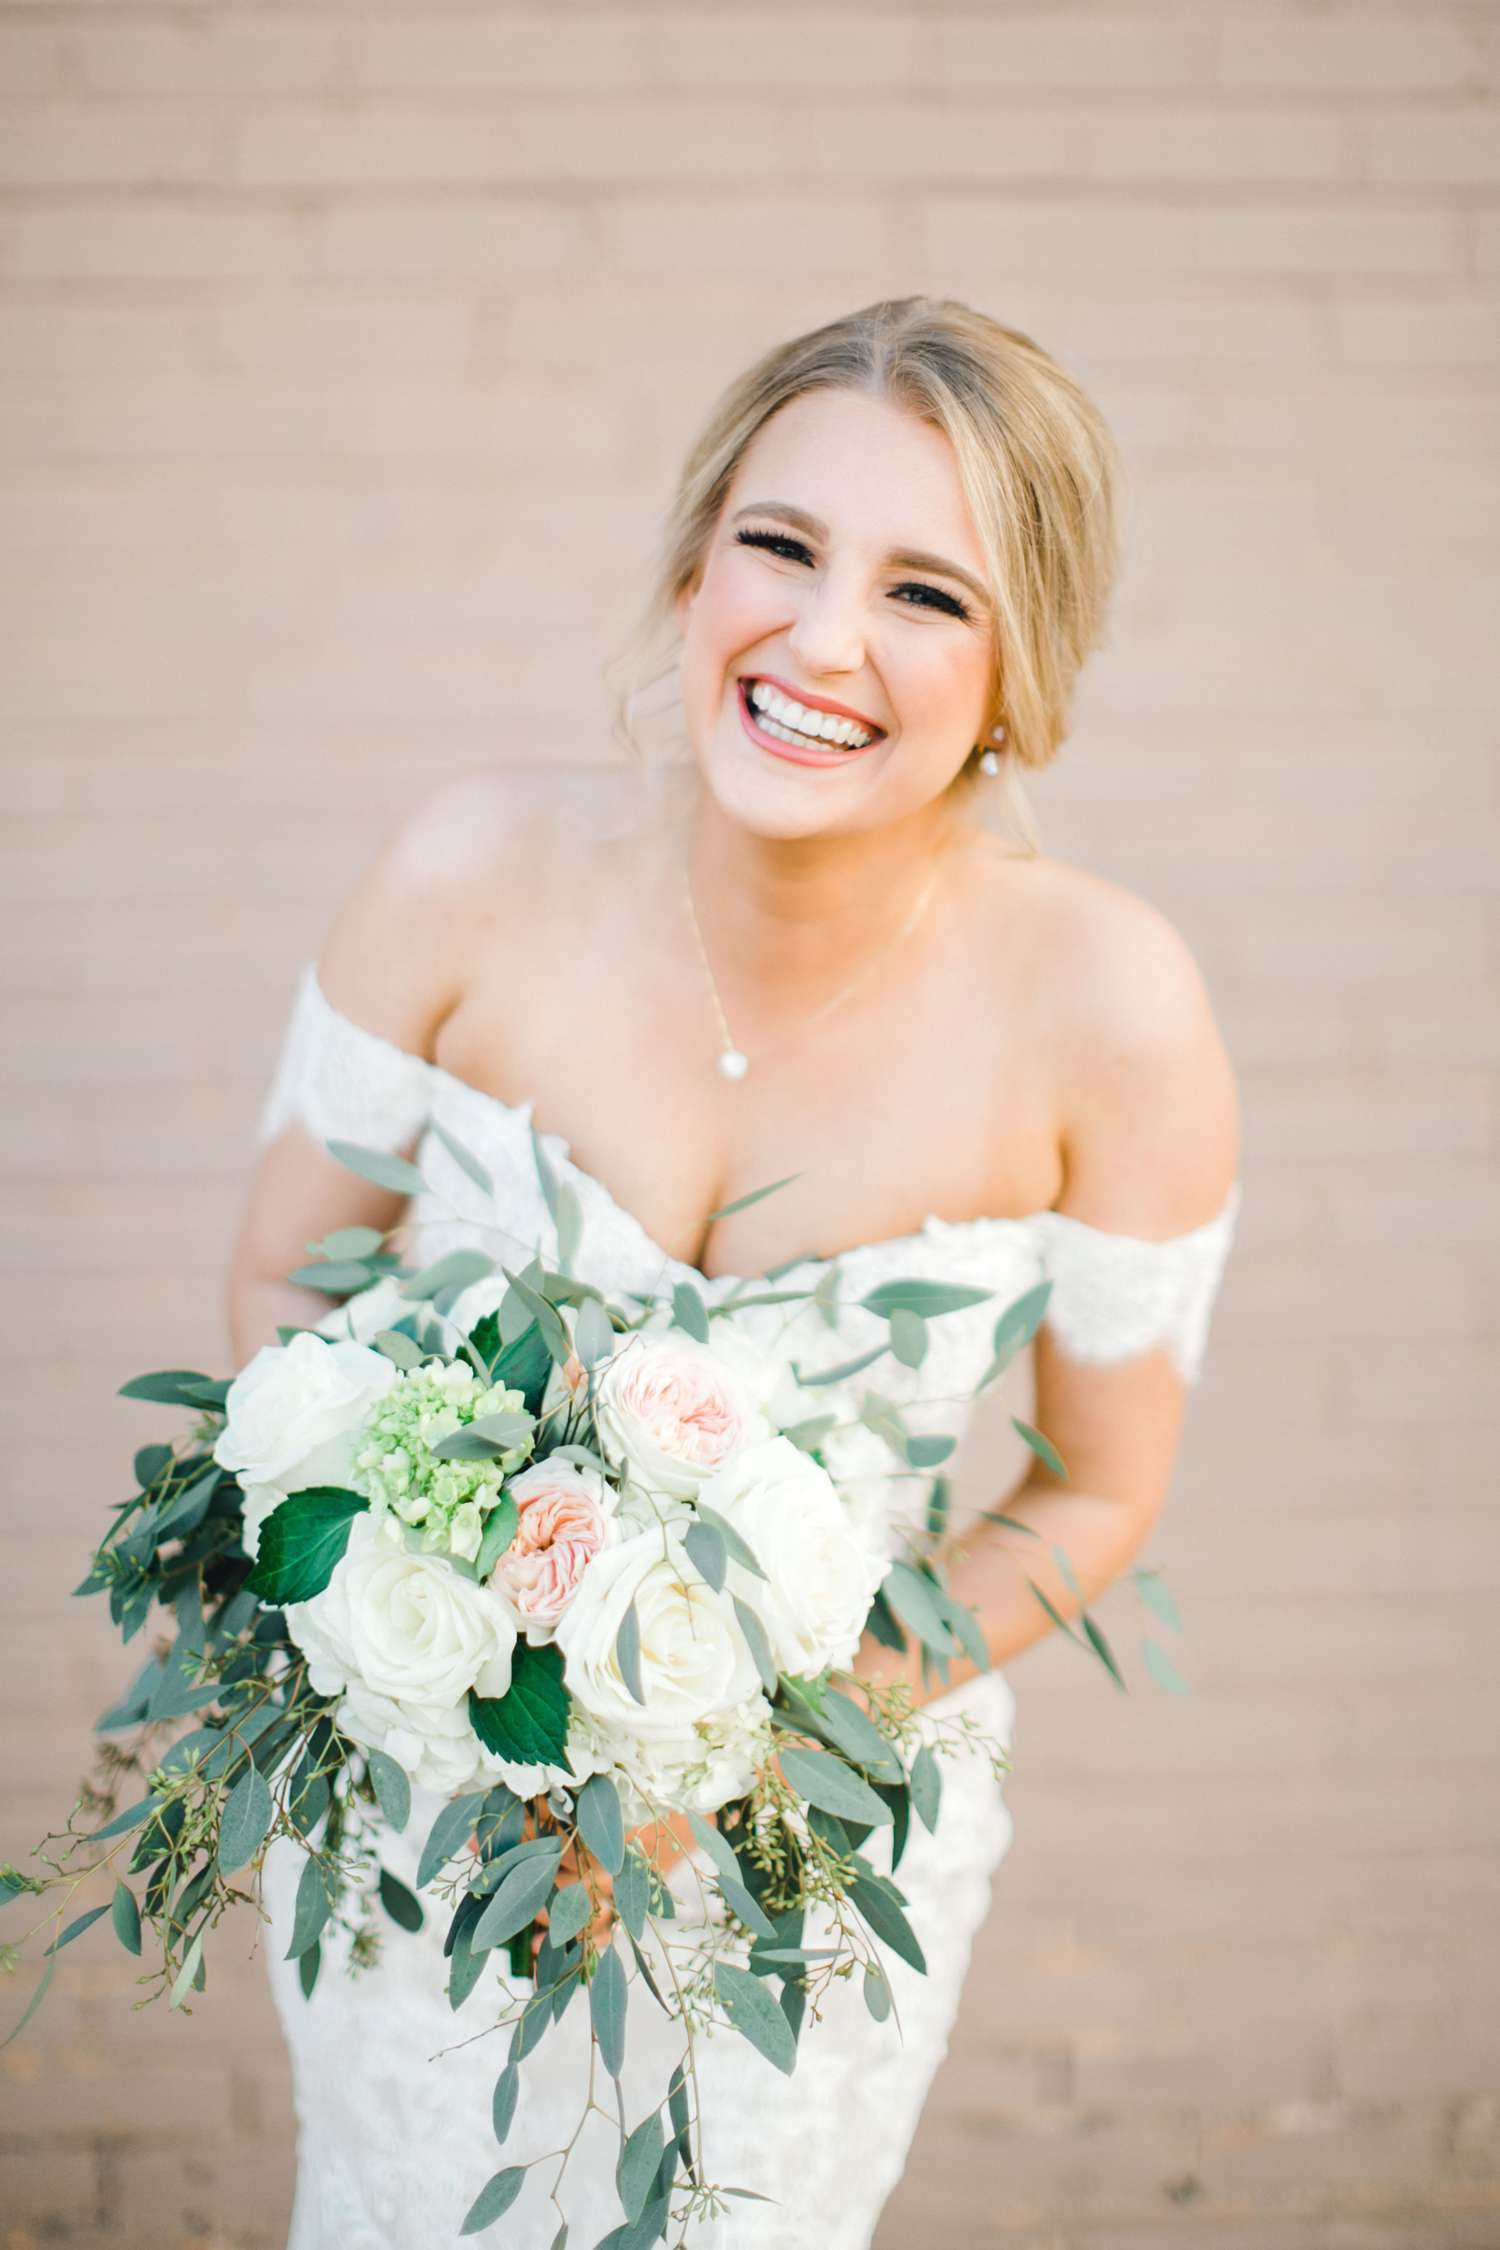 MORGAN+BOONE+BRIDALS+WEDDING+PHOTOGRAPHER_0016.jpg